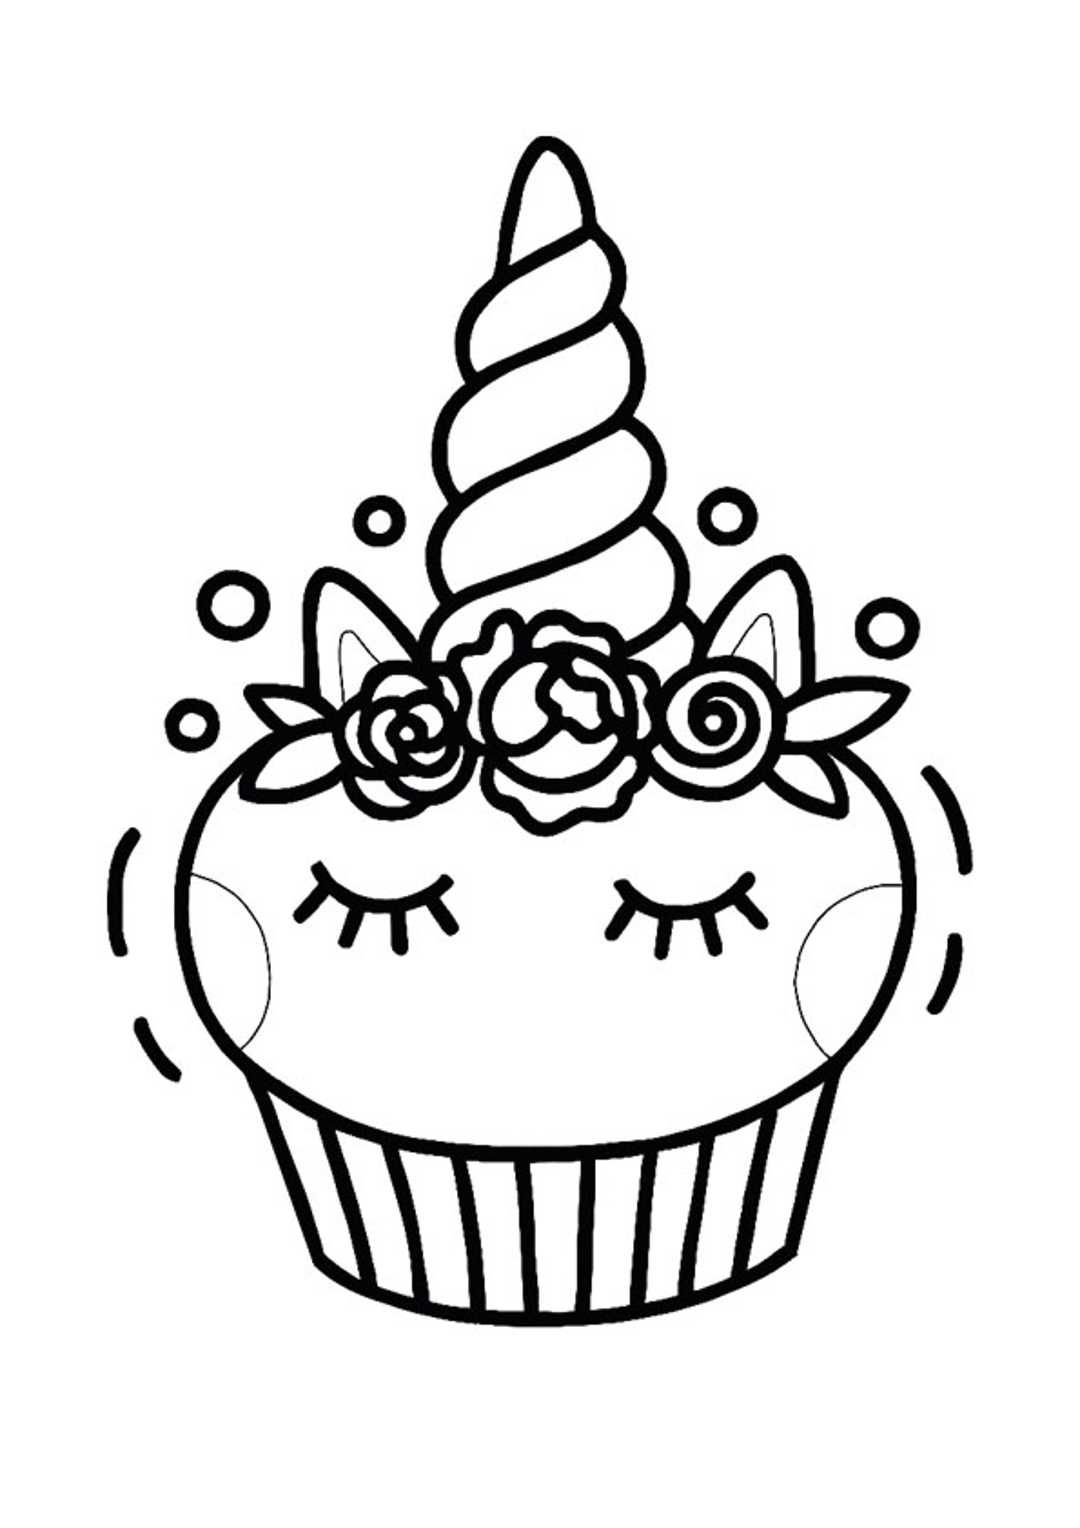 Unicorn Cake Coloring Pages Unicorn Coloring Pages Cupcake Coloring Pages Birthday Coloring Pages